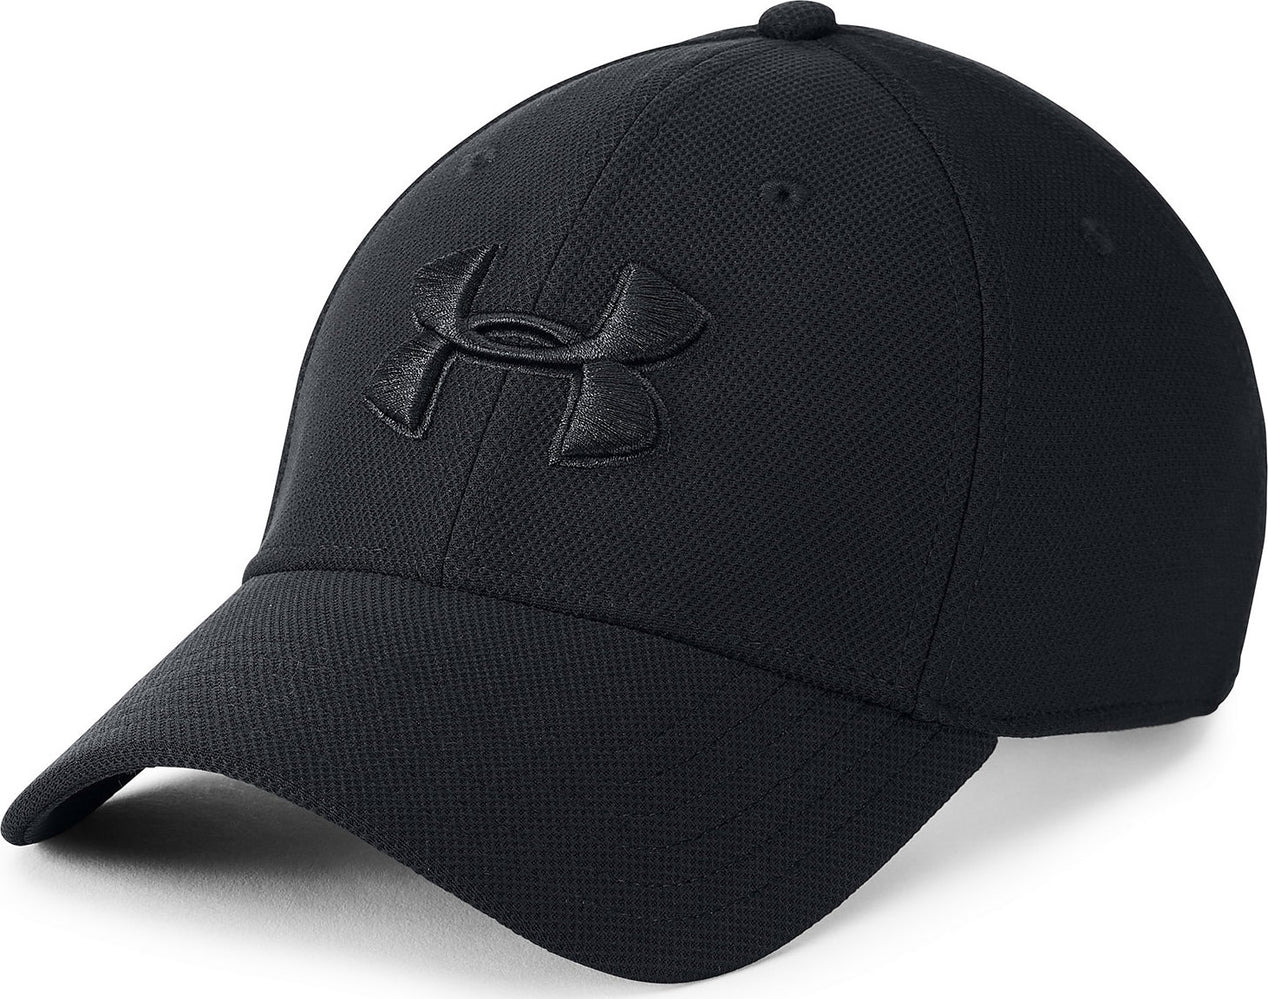 29c1e516c021b Under Armour Ua Blitzing 3.0 Cap - Men s